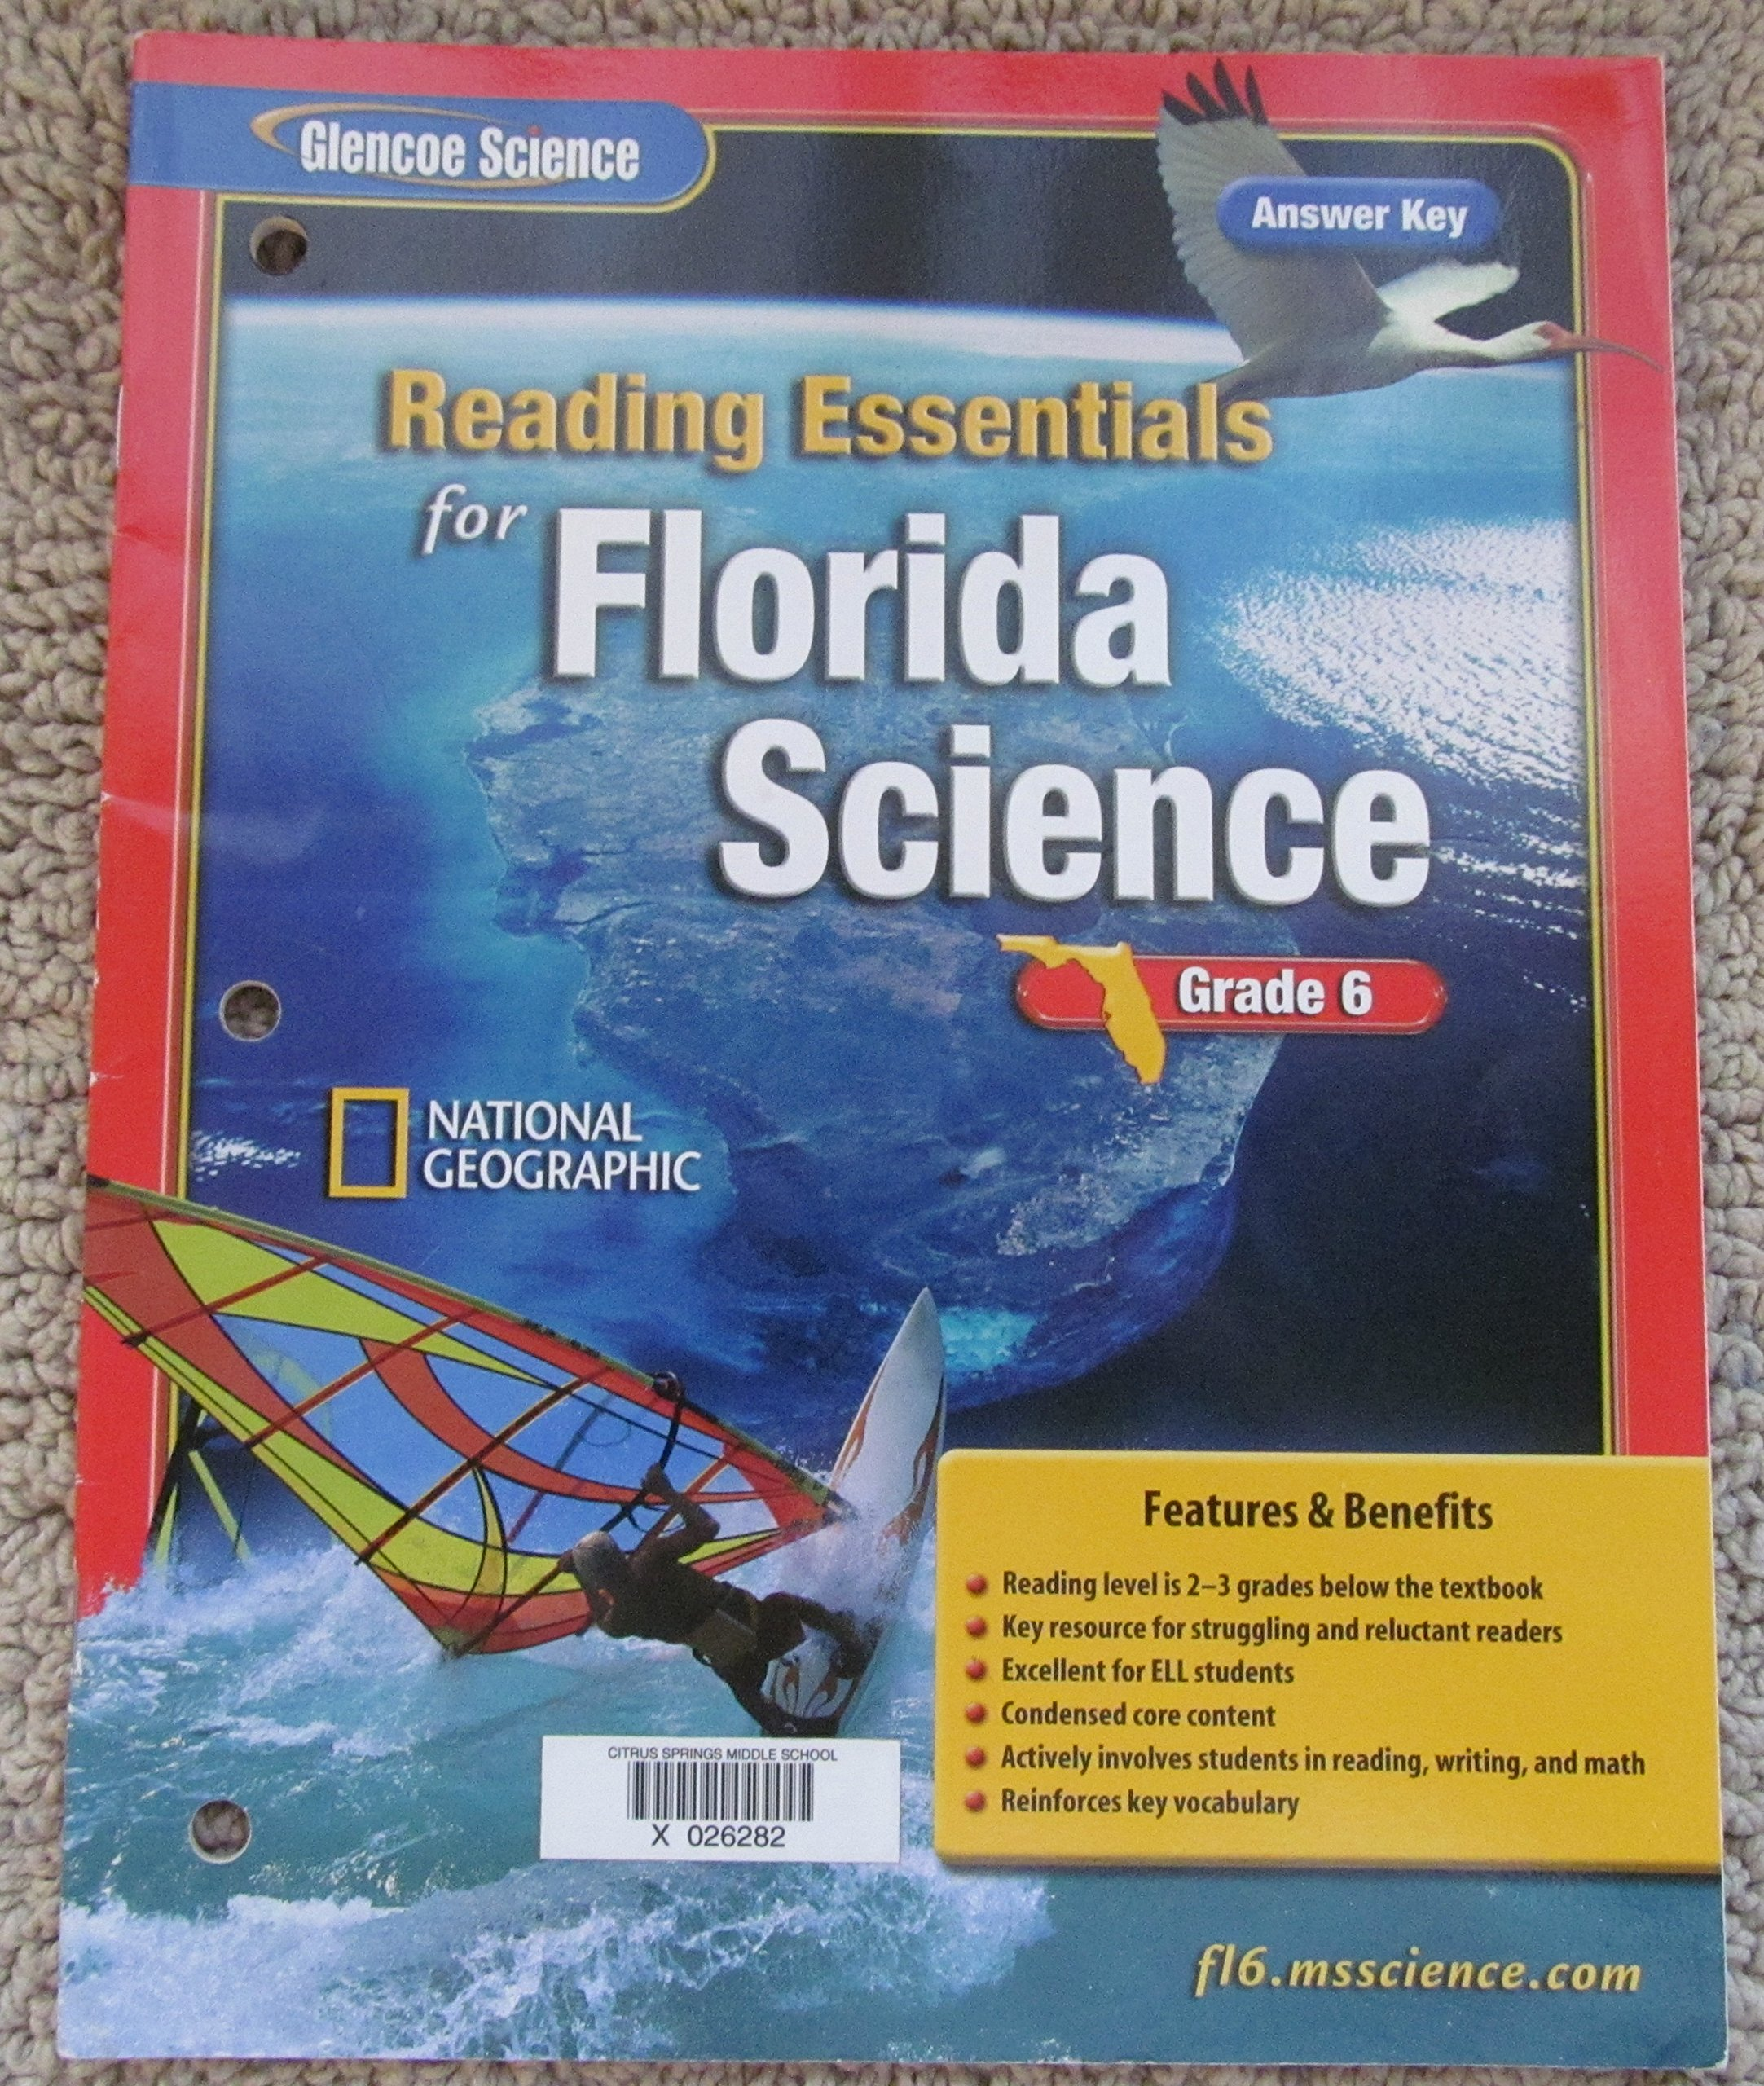 Glencoe Science: Reading Essentials for Florida Science